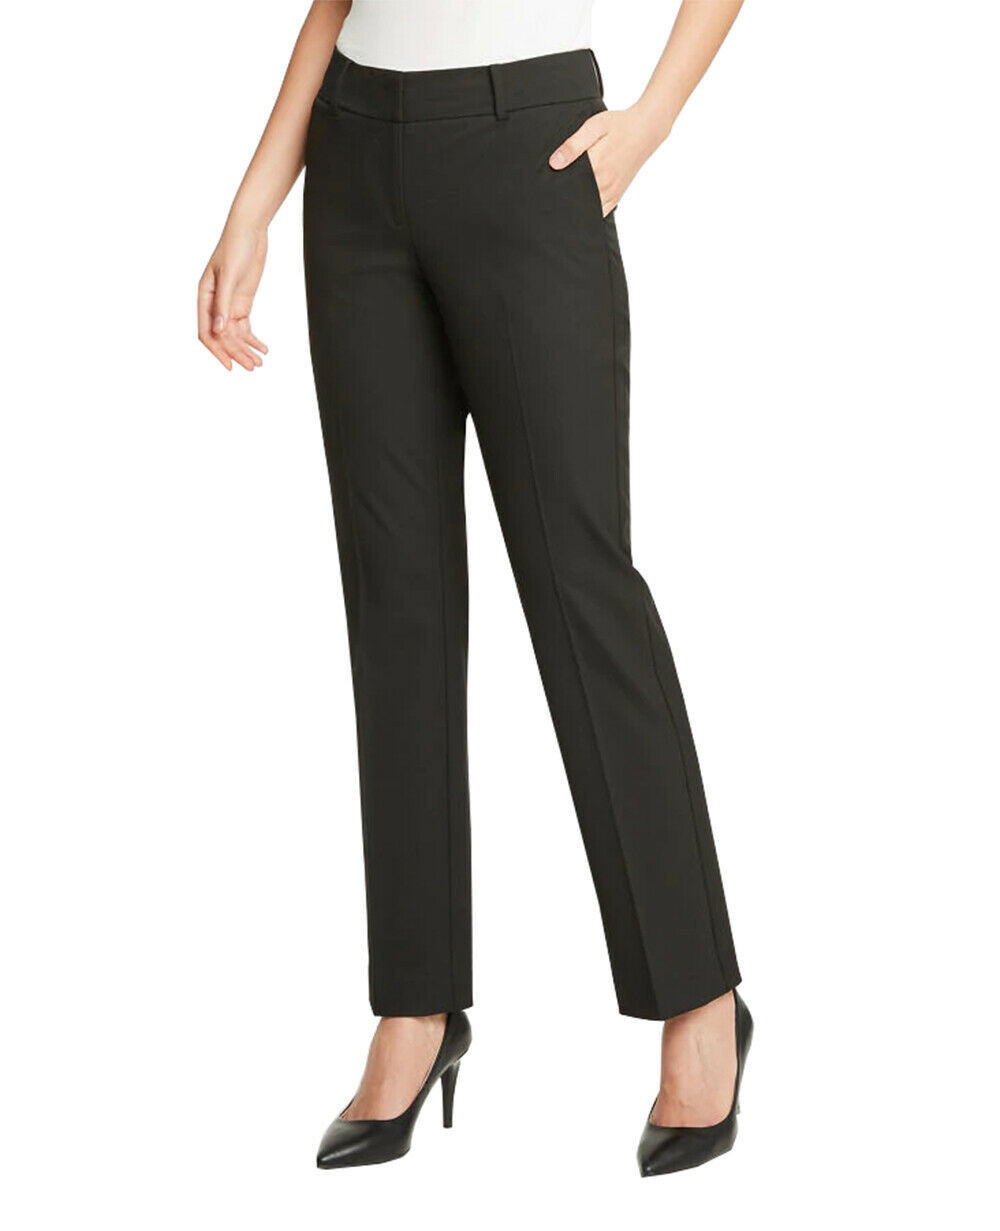 Primary image for Ann Taylor Women's Curvy Straight Leg Pants, Raven Black, Sz 8 (1406-3)